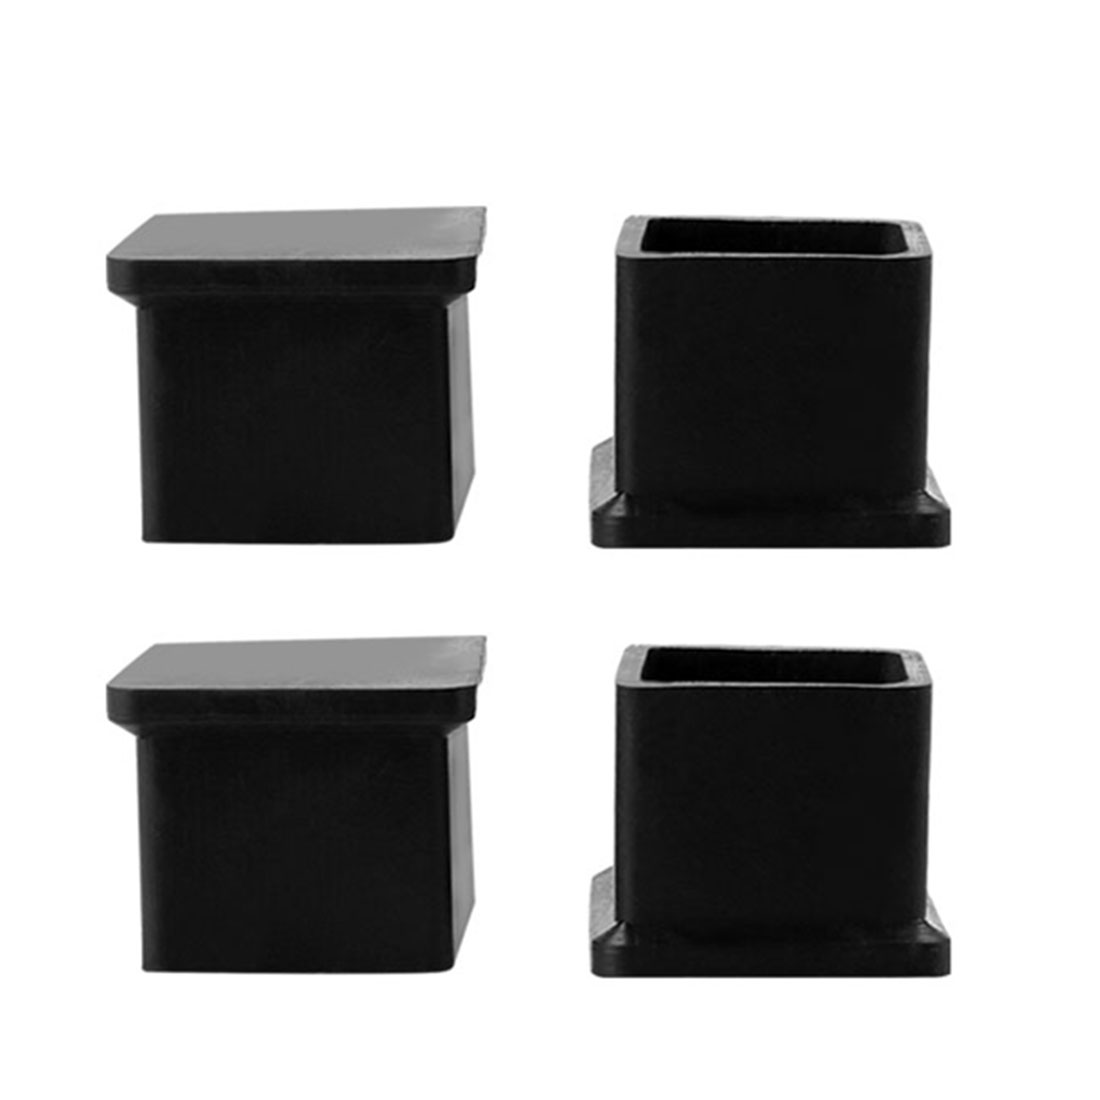 20mm x 20mm Black Square Chair Table Rubber Foot Covers 4 Pcs